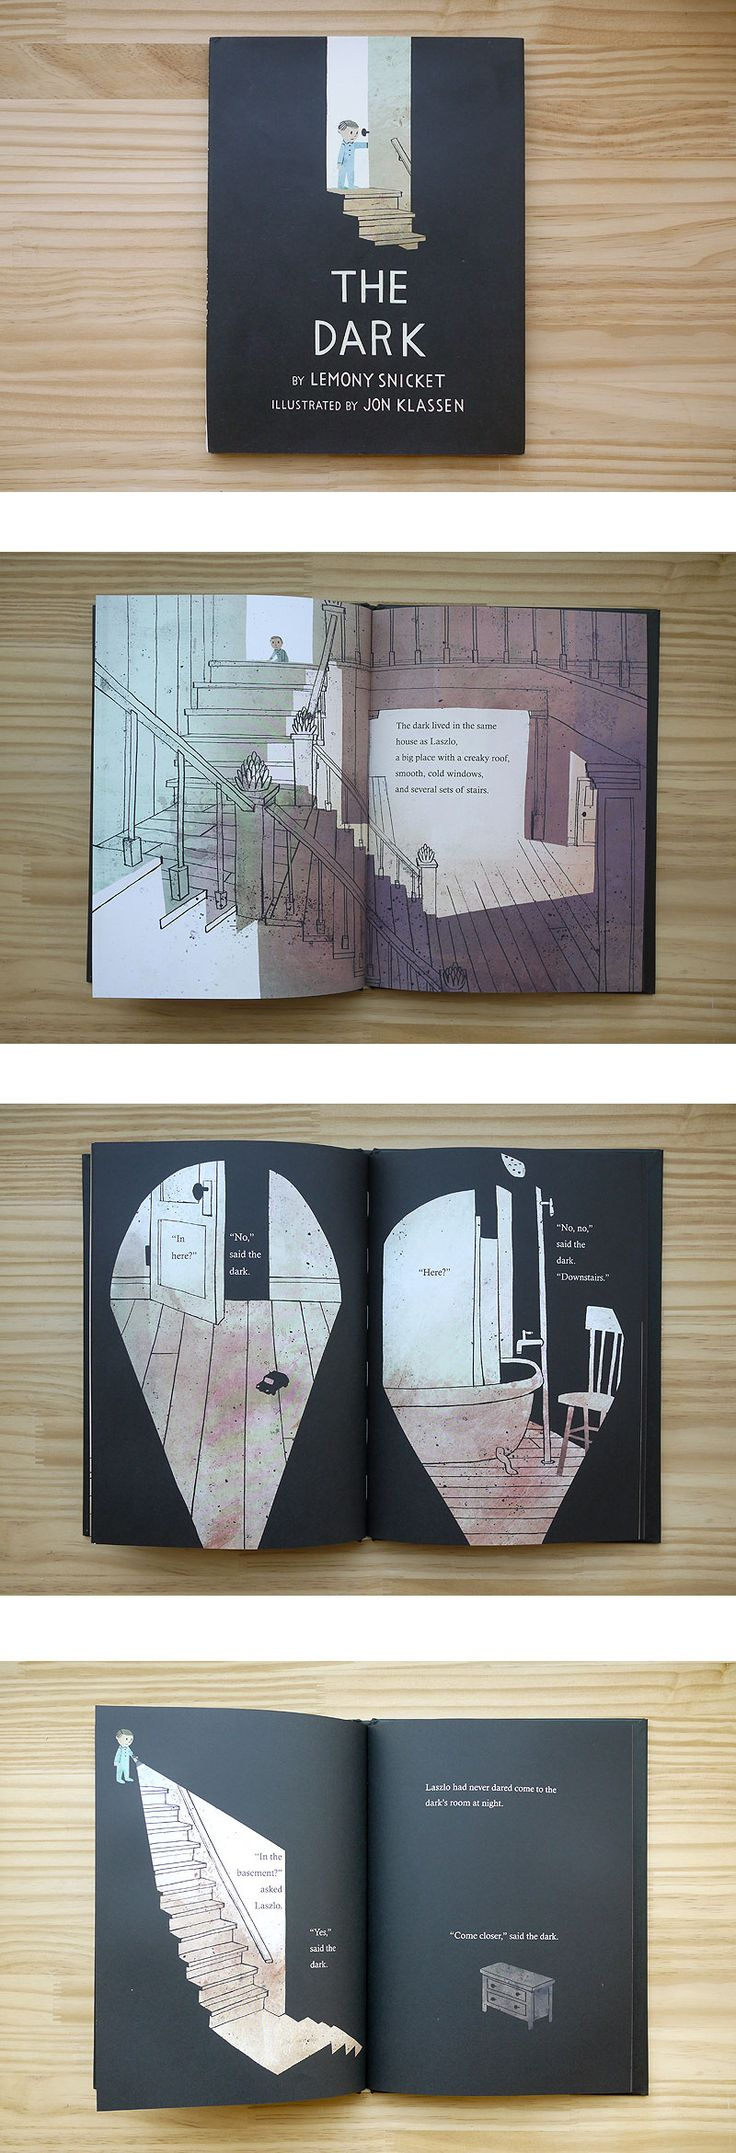 The Dark by Lemony Snicket Illustrated by Jon Klassen Orchard Books